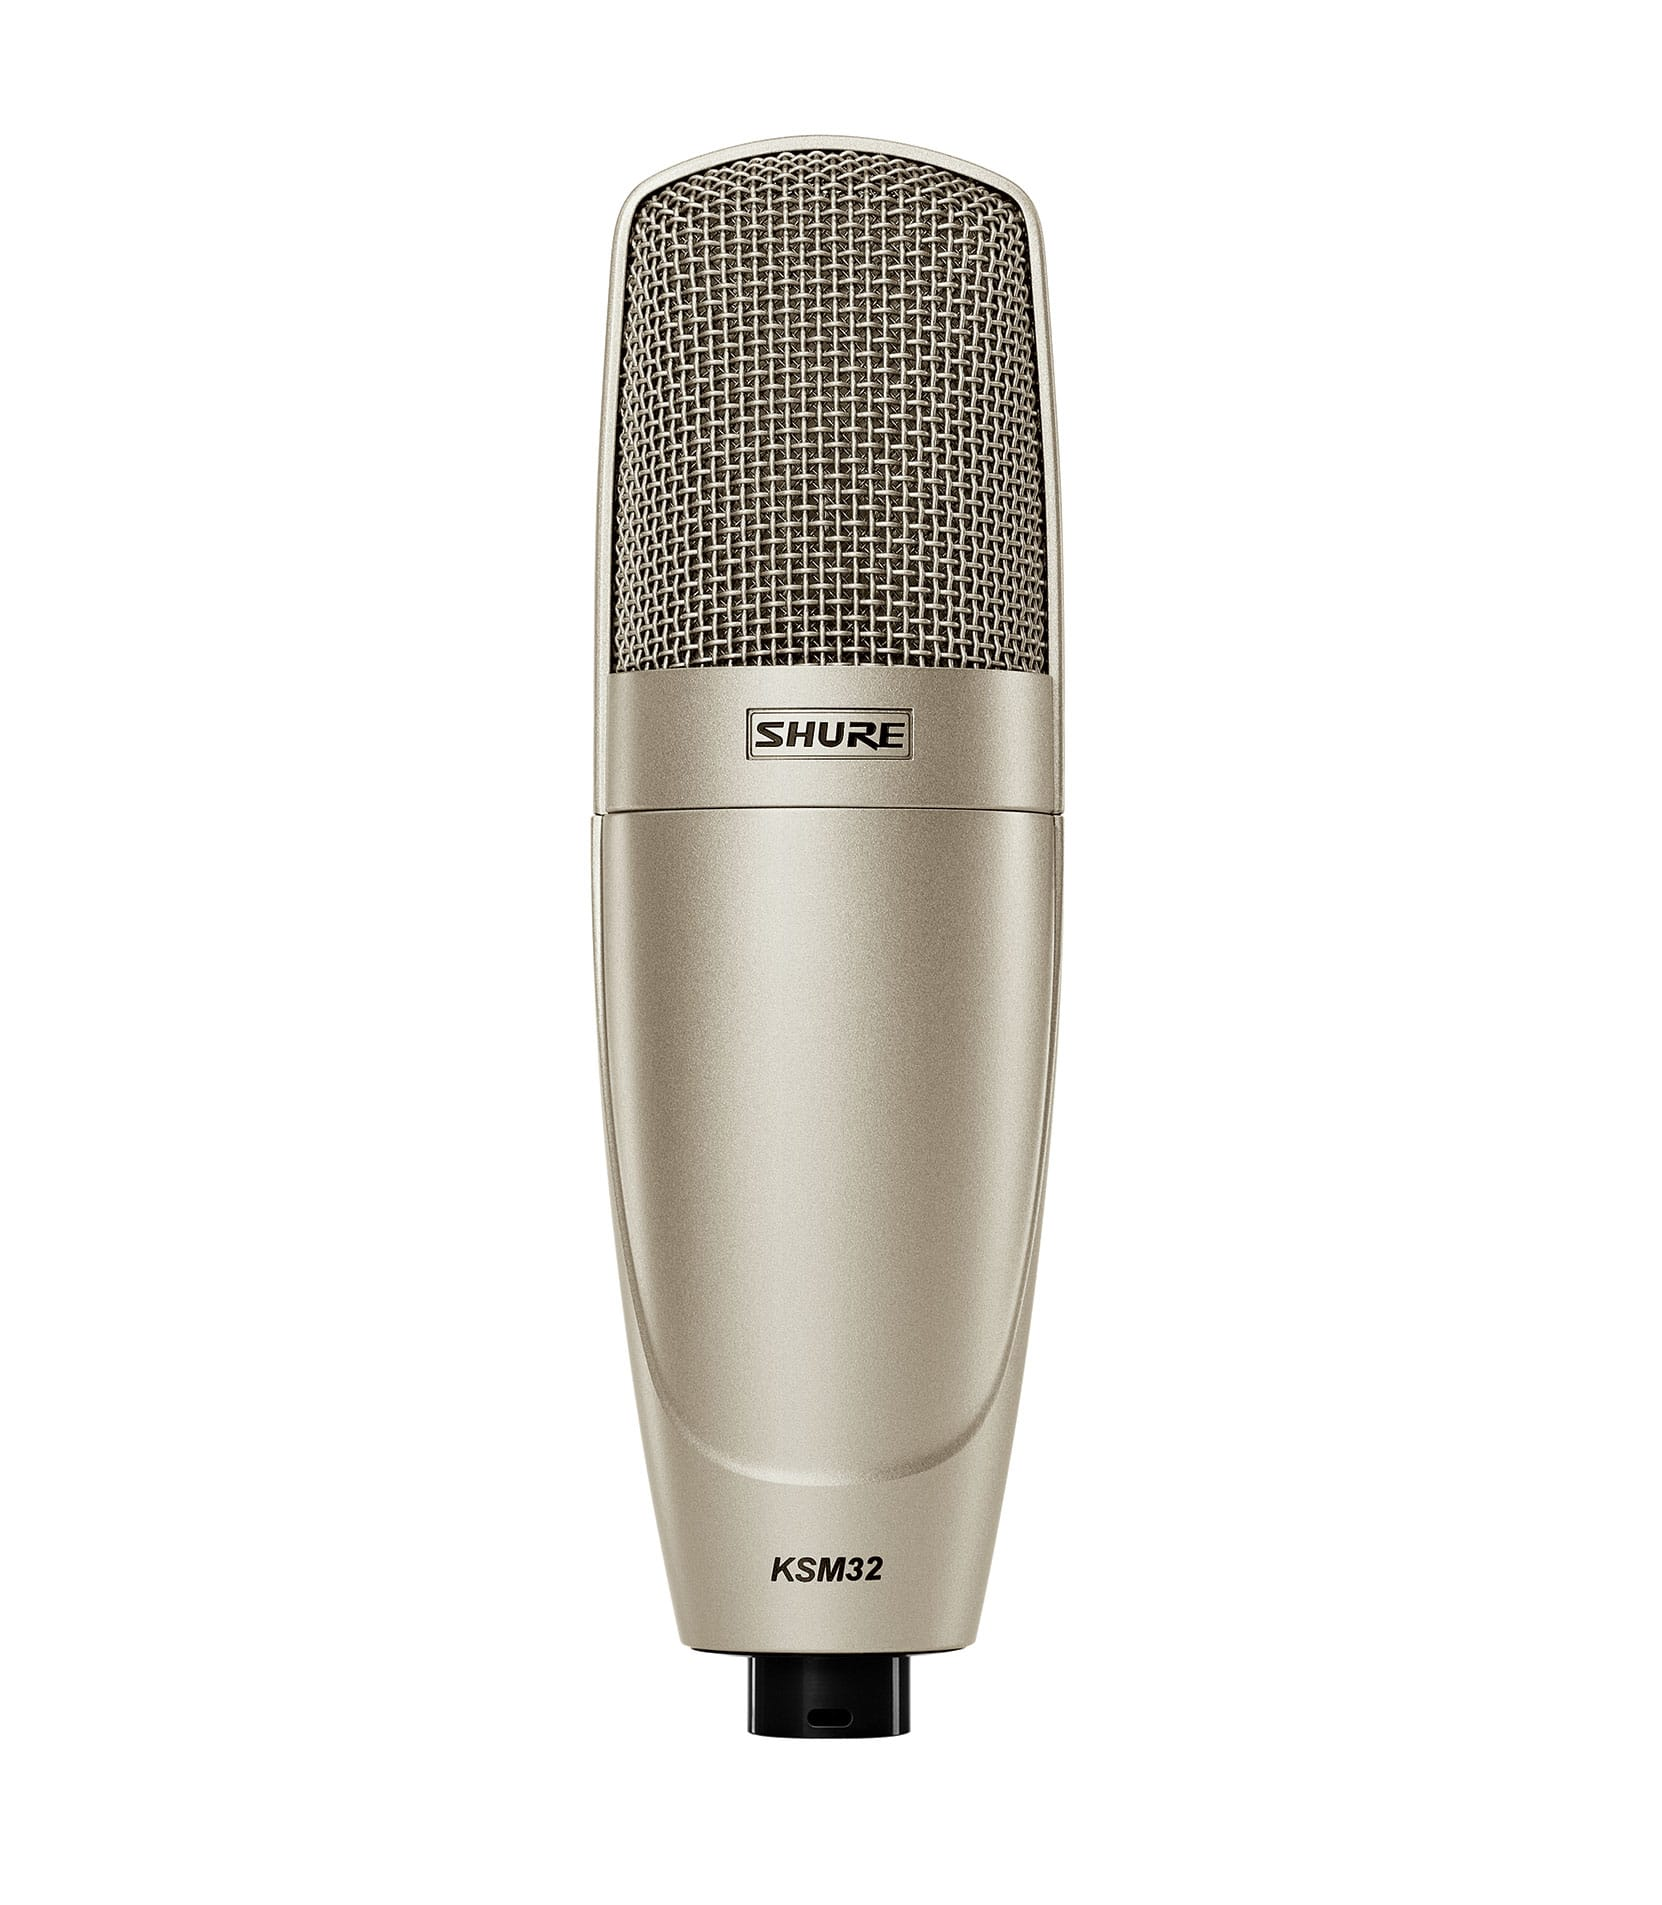 Shure - KSM32 SL - Melody House Musical Instruments